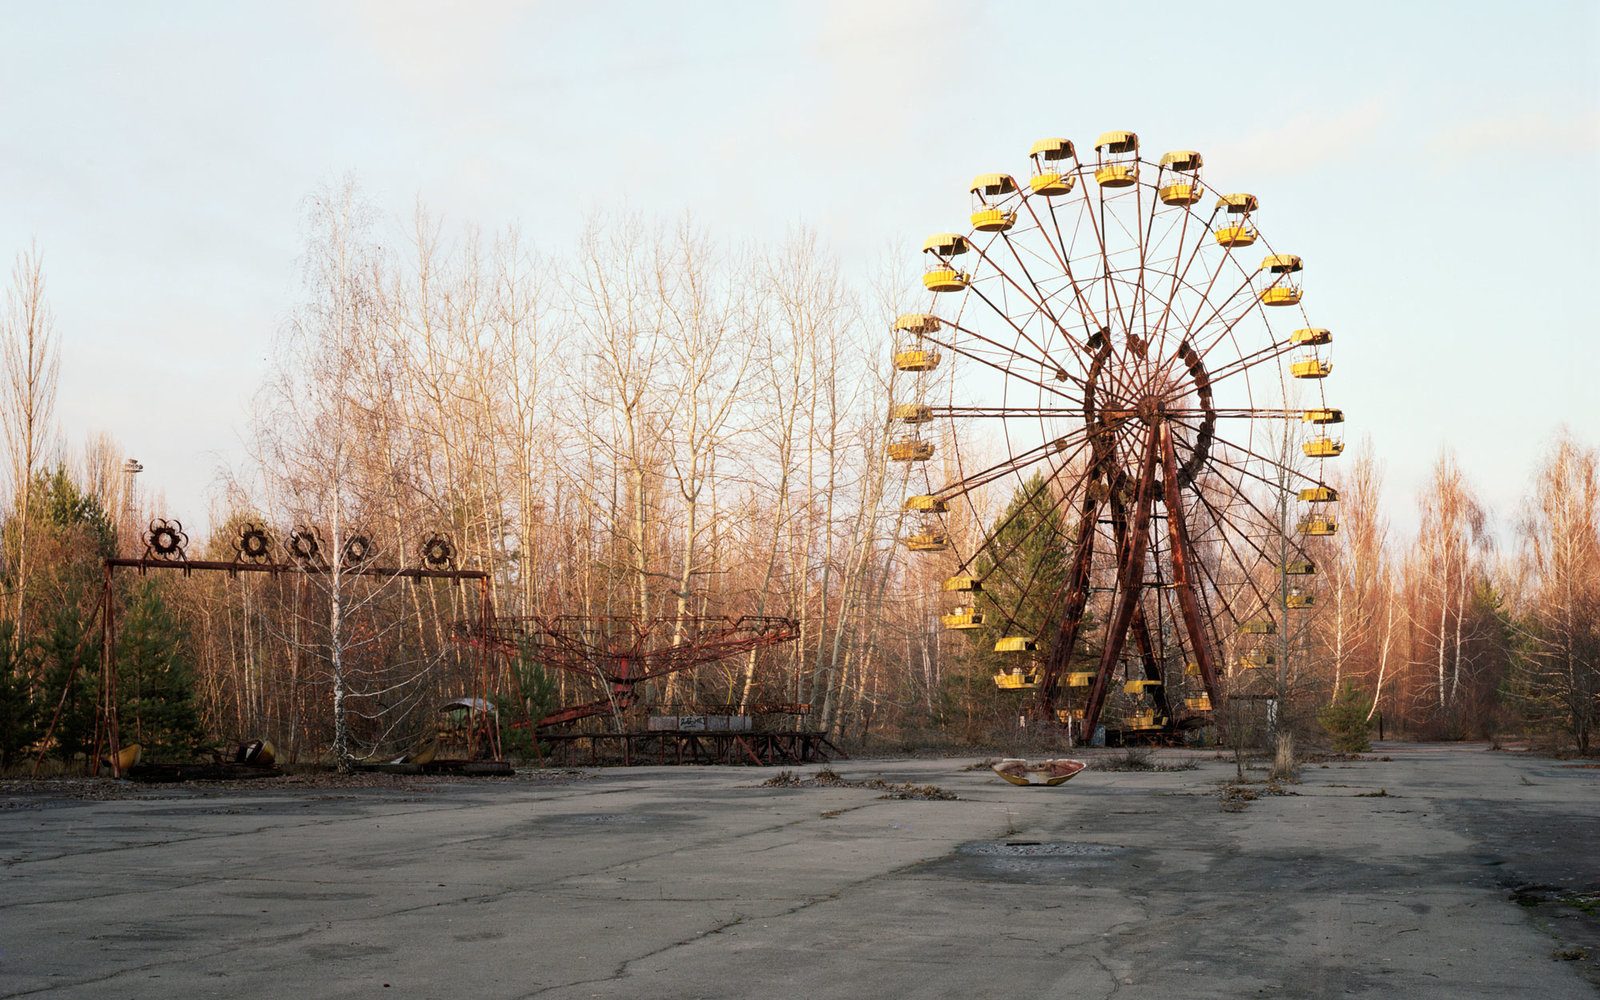 In Photos: Chernobyl, 30 Years After Nuclear Disaster